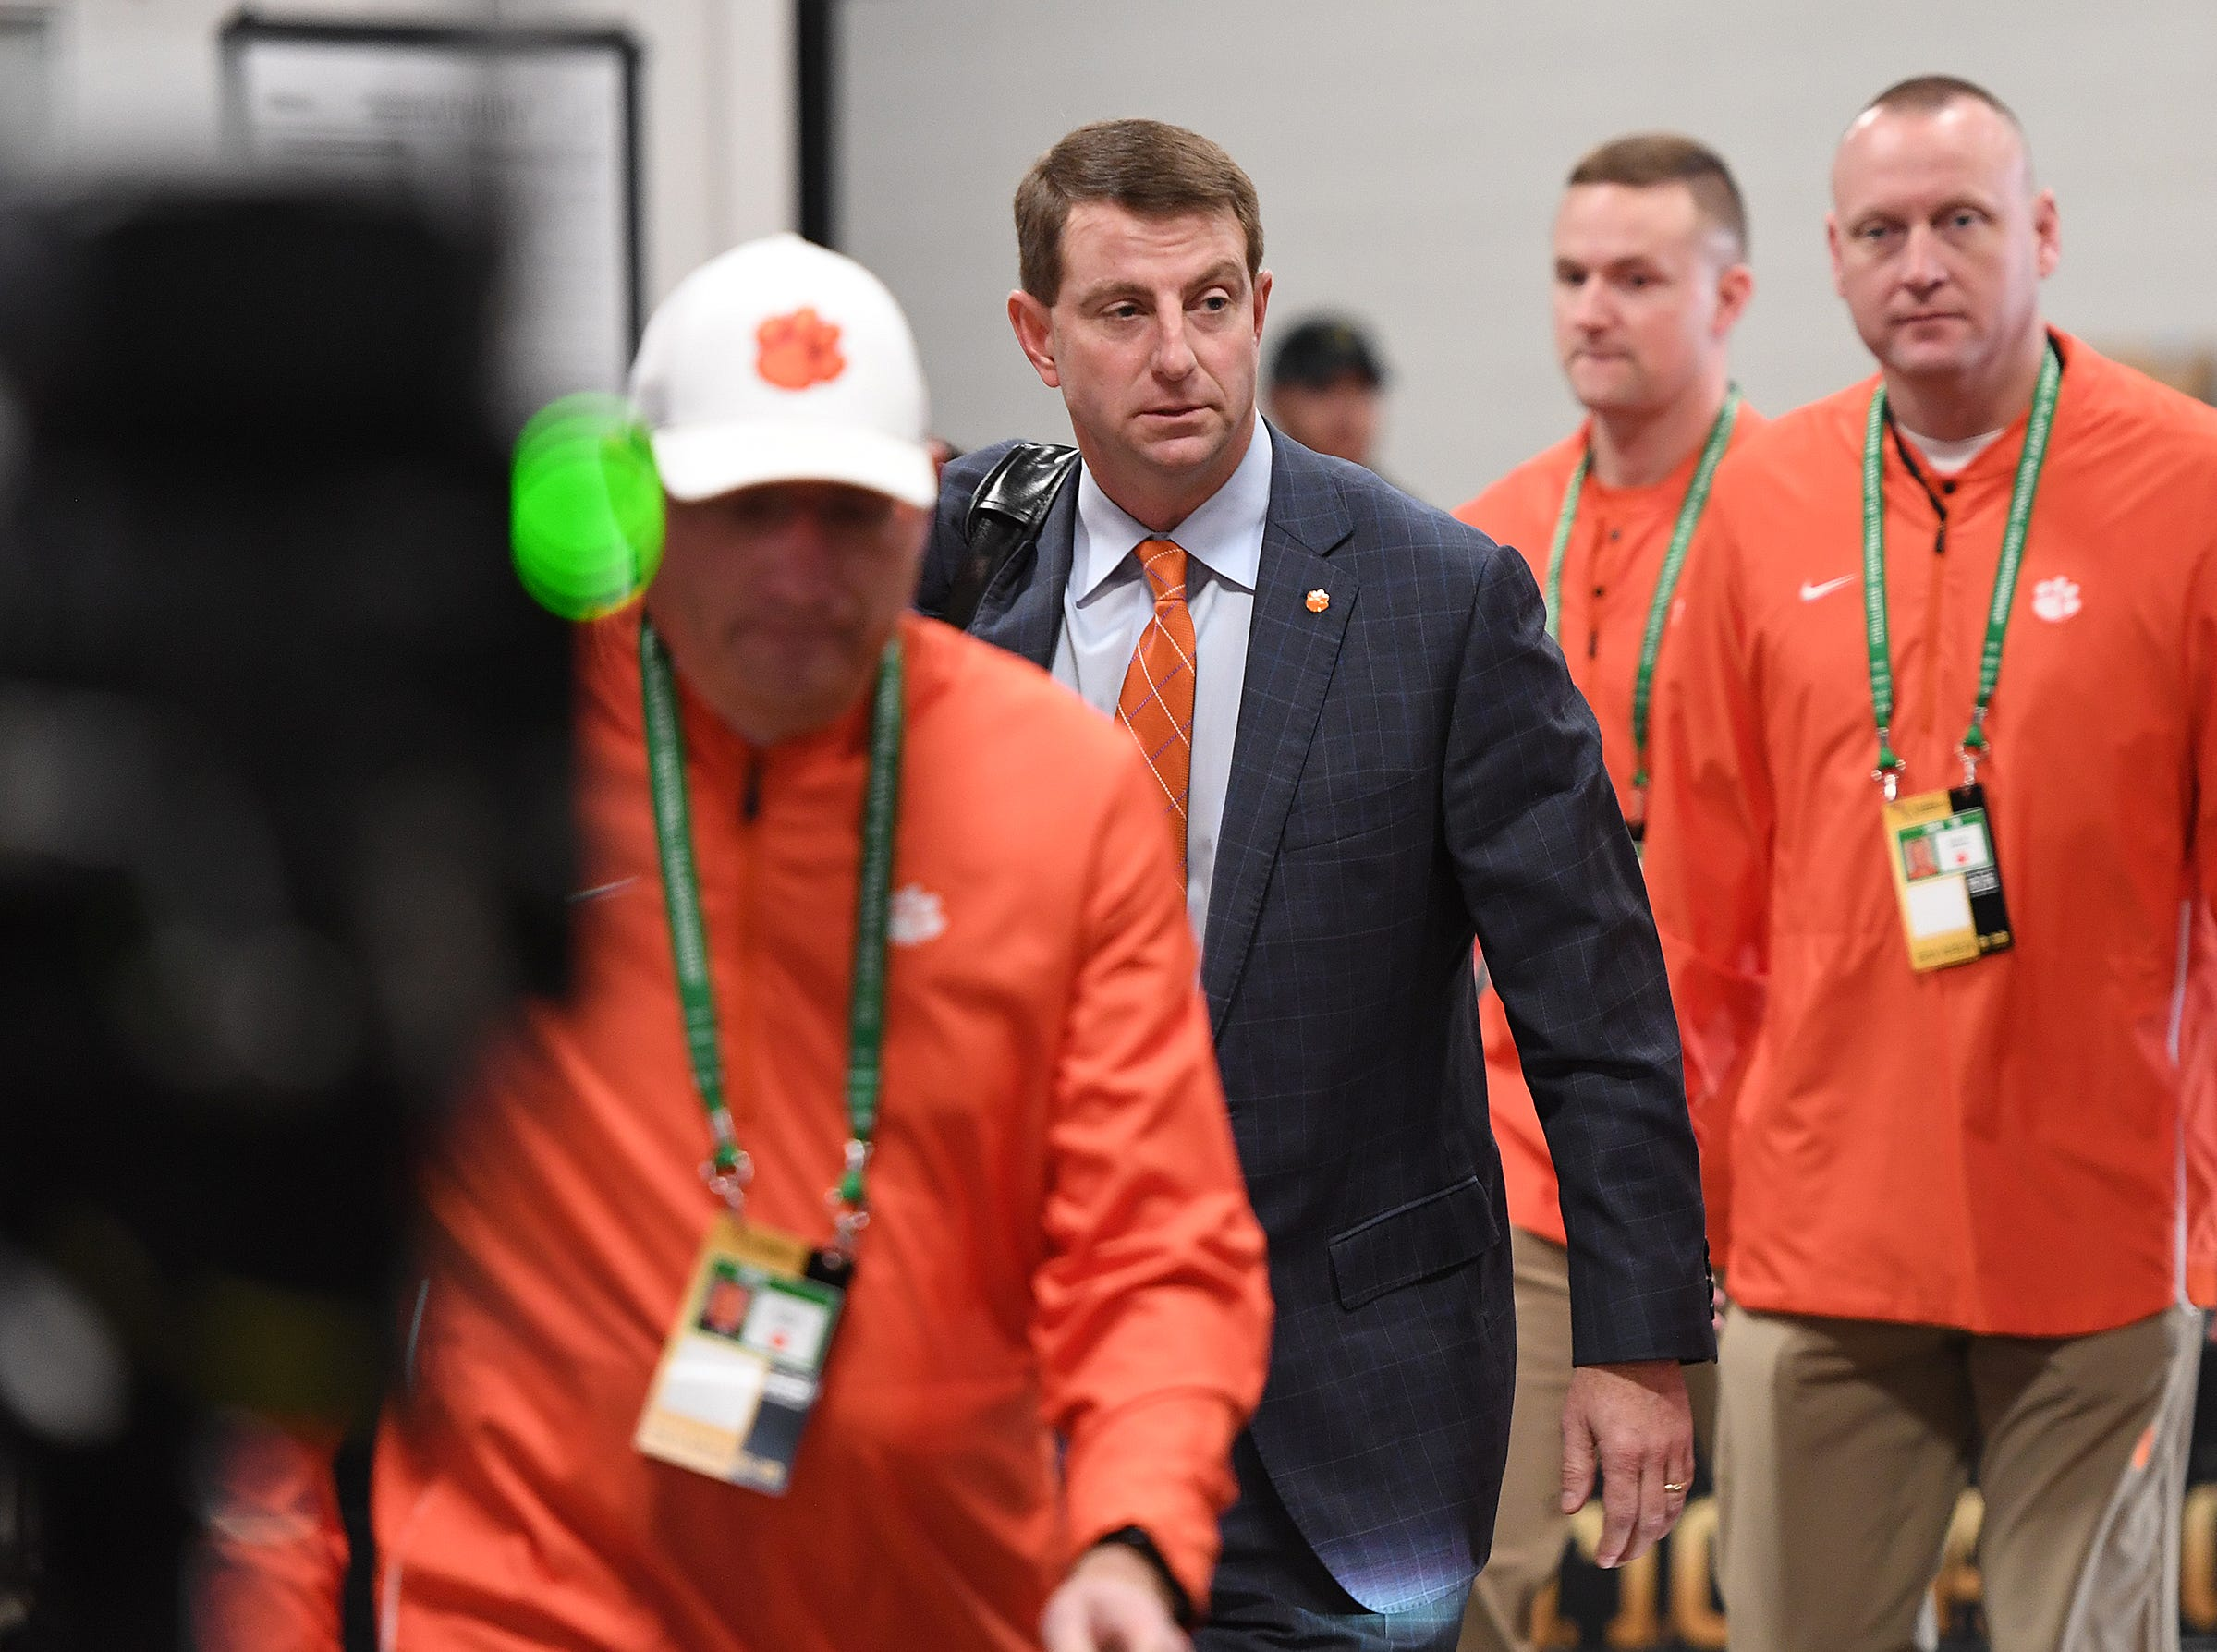 Clemson head coach Dabo Swinney arrives at Levi's Stadium in Santa Clara, CA Monday, January 7, 2019 for the Tiger's game against Alabama in the College Football National Championship.